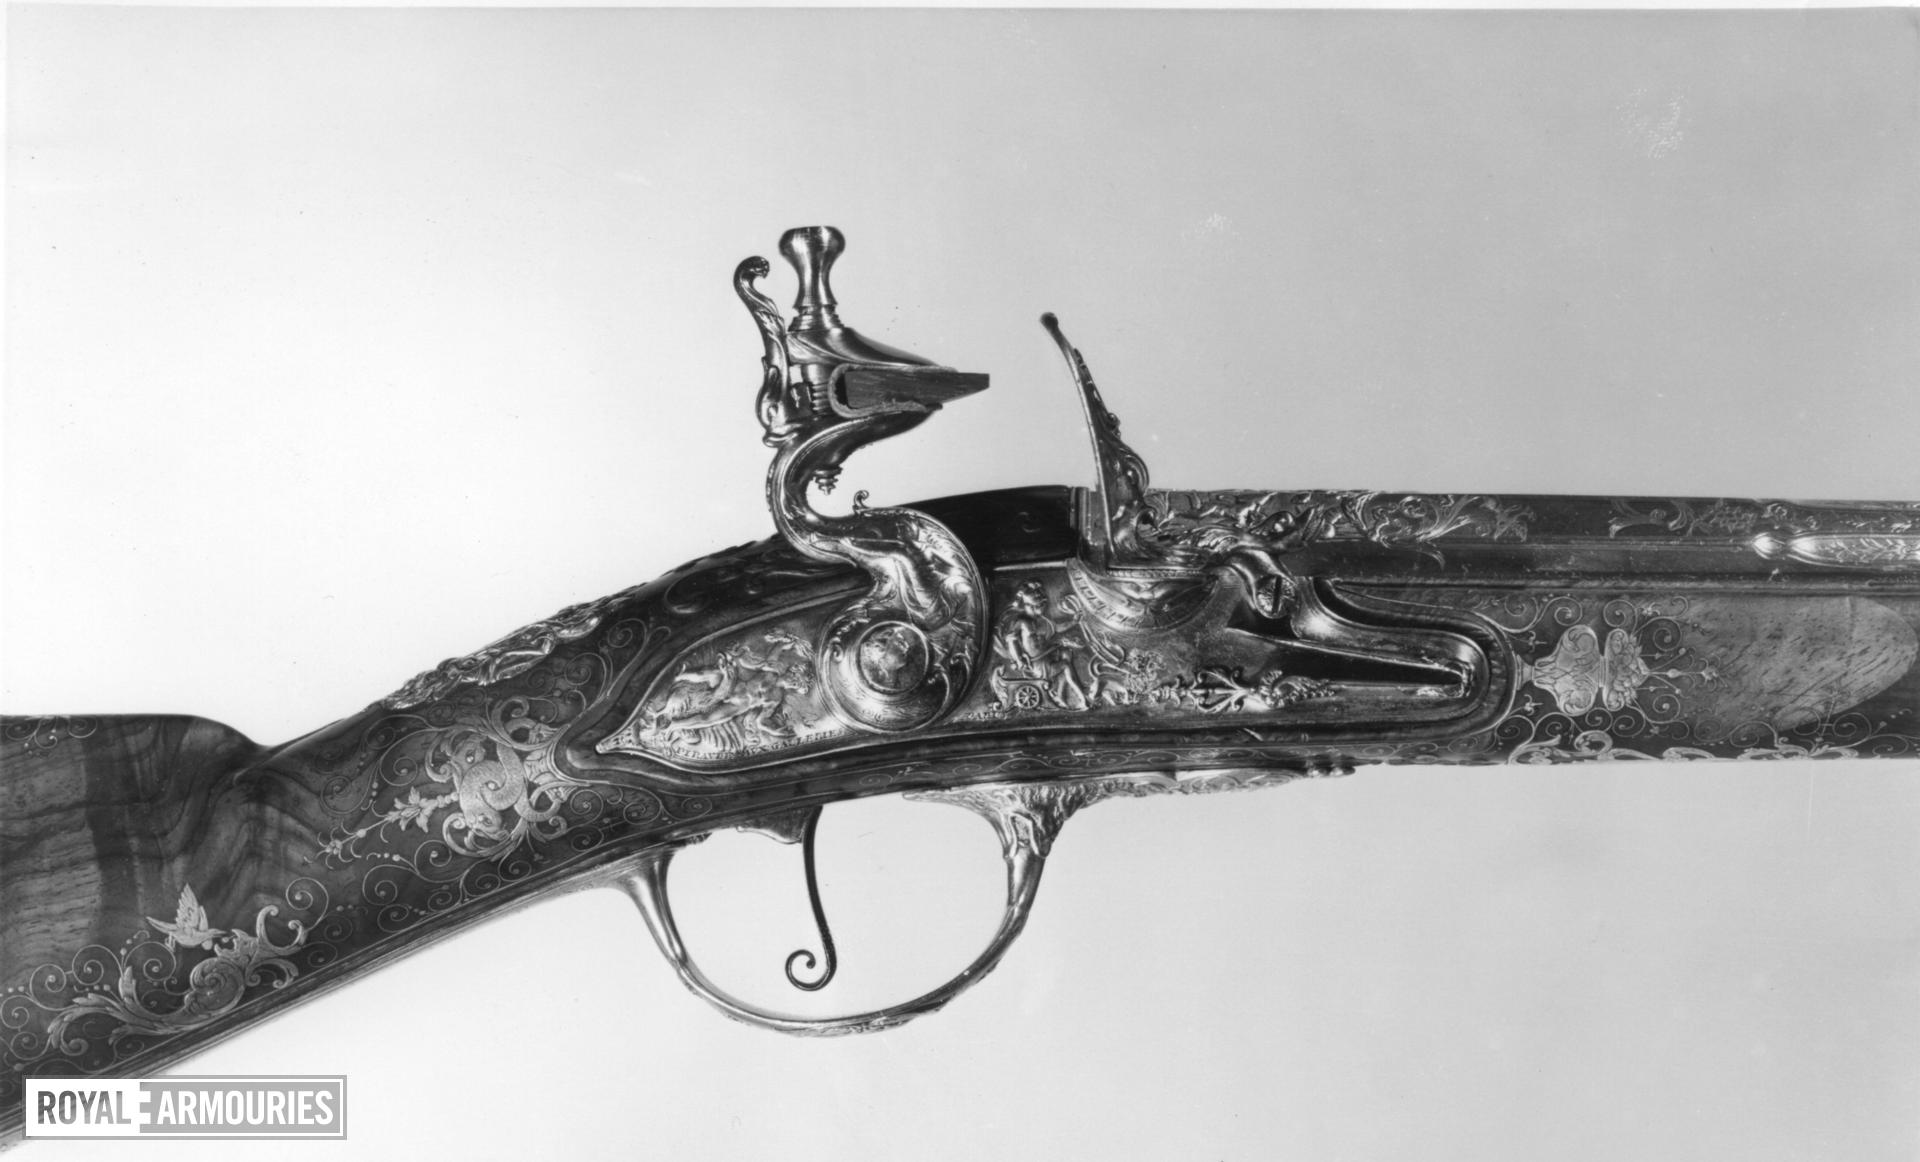 Flintlock muzzle-loading sporting gun - By Bertrand Piraube Of fine quality